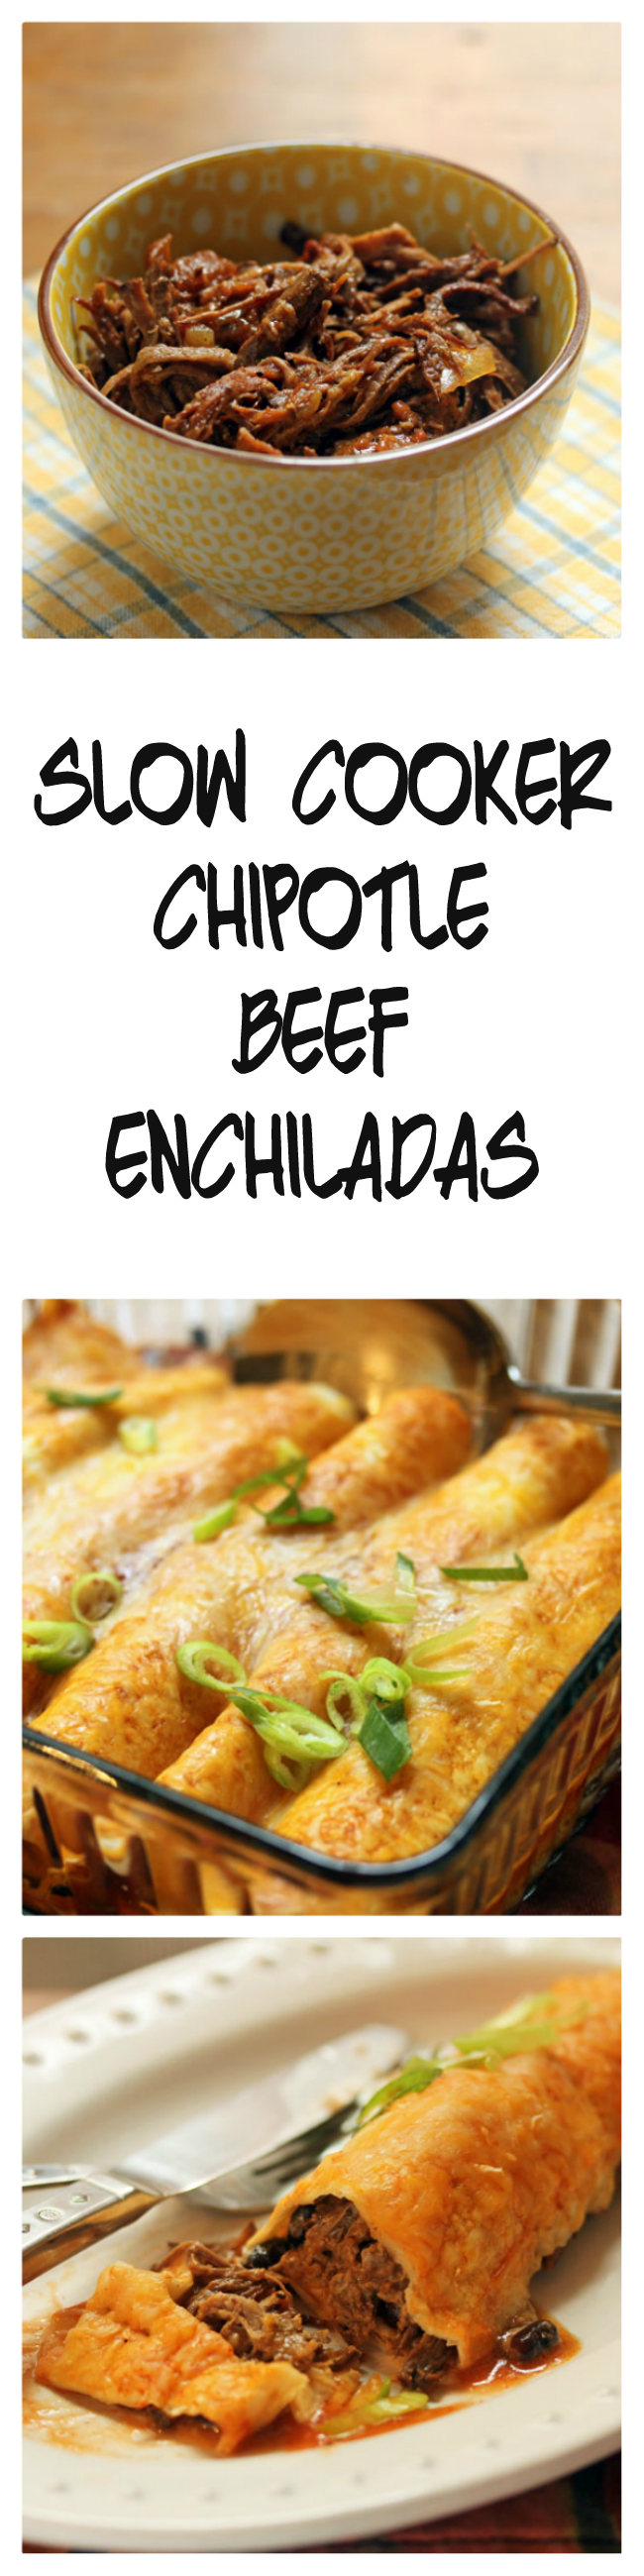 Make the beef ahead in your slow cooker, and the enchiladas come together in less than 30 minutes! Recipe from The Perfect Pantry.